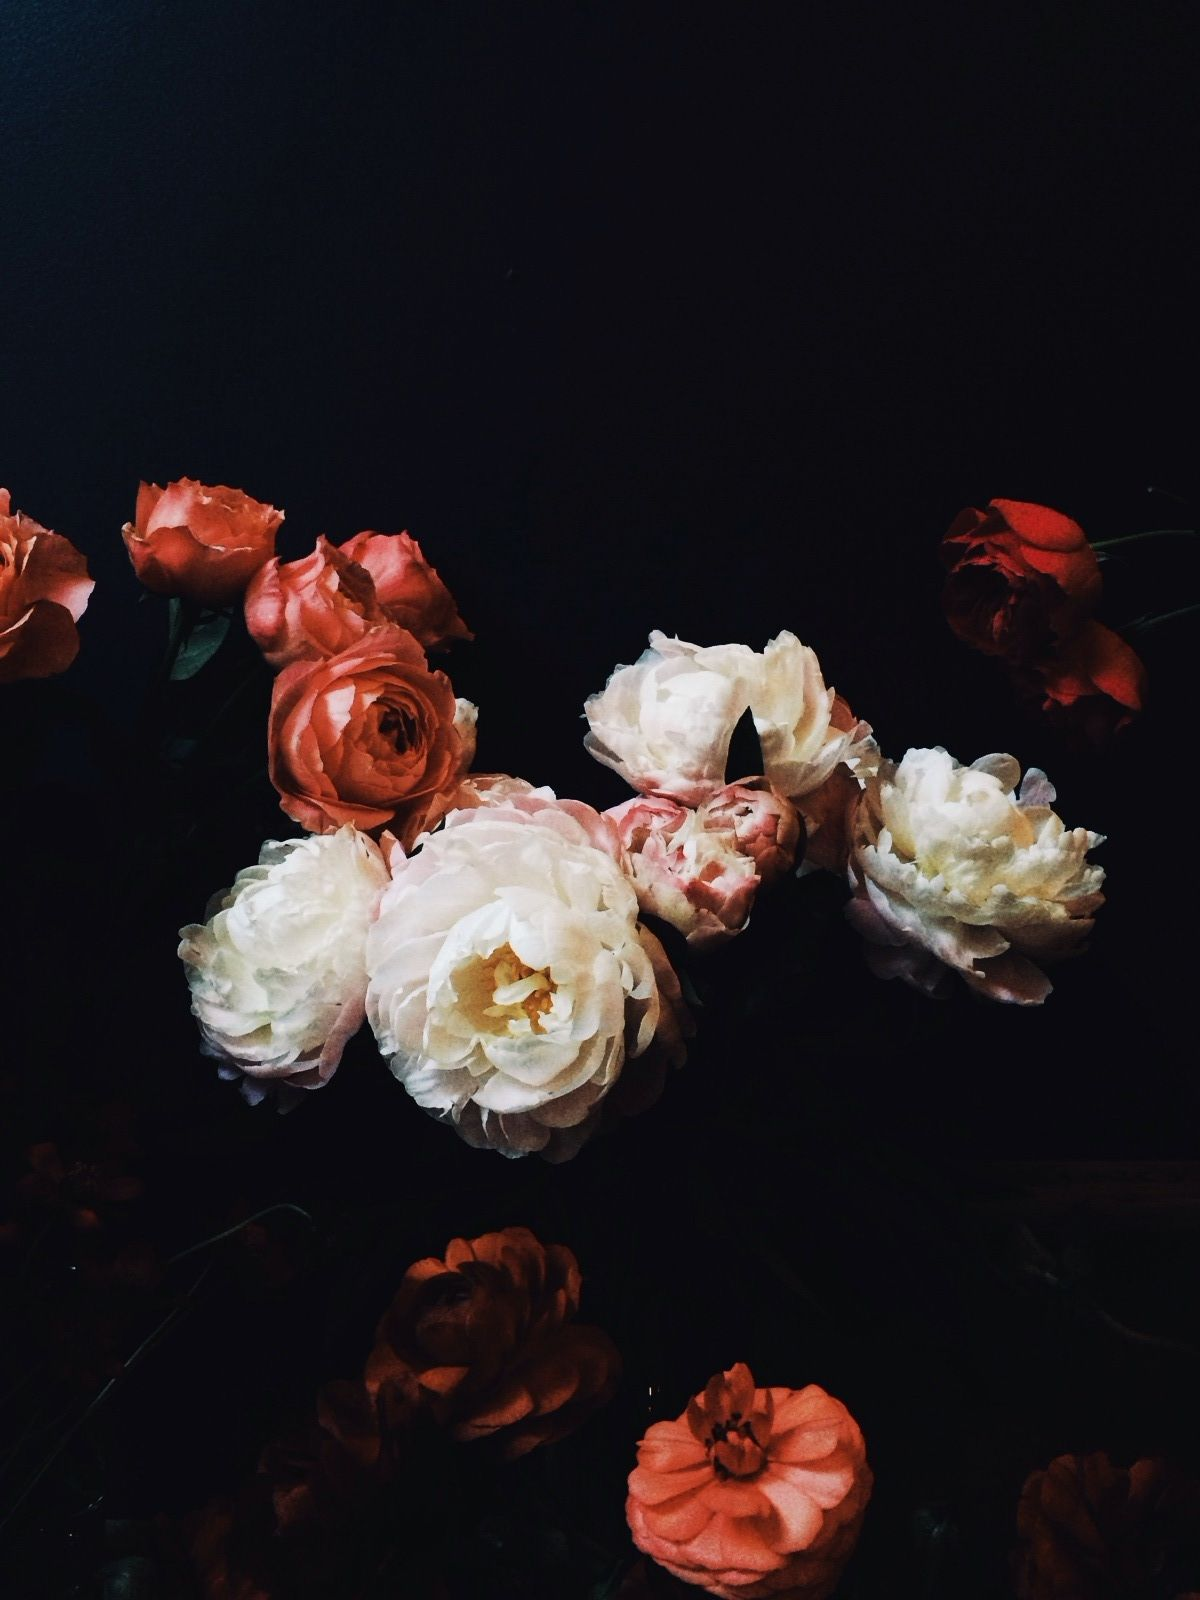 Brooklyn flowers andreagentl vsco grid living the life brooklyn flowers andreagentl vsco grid izmirmasajfo